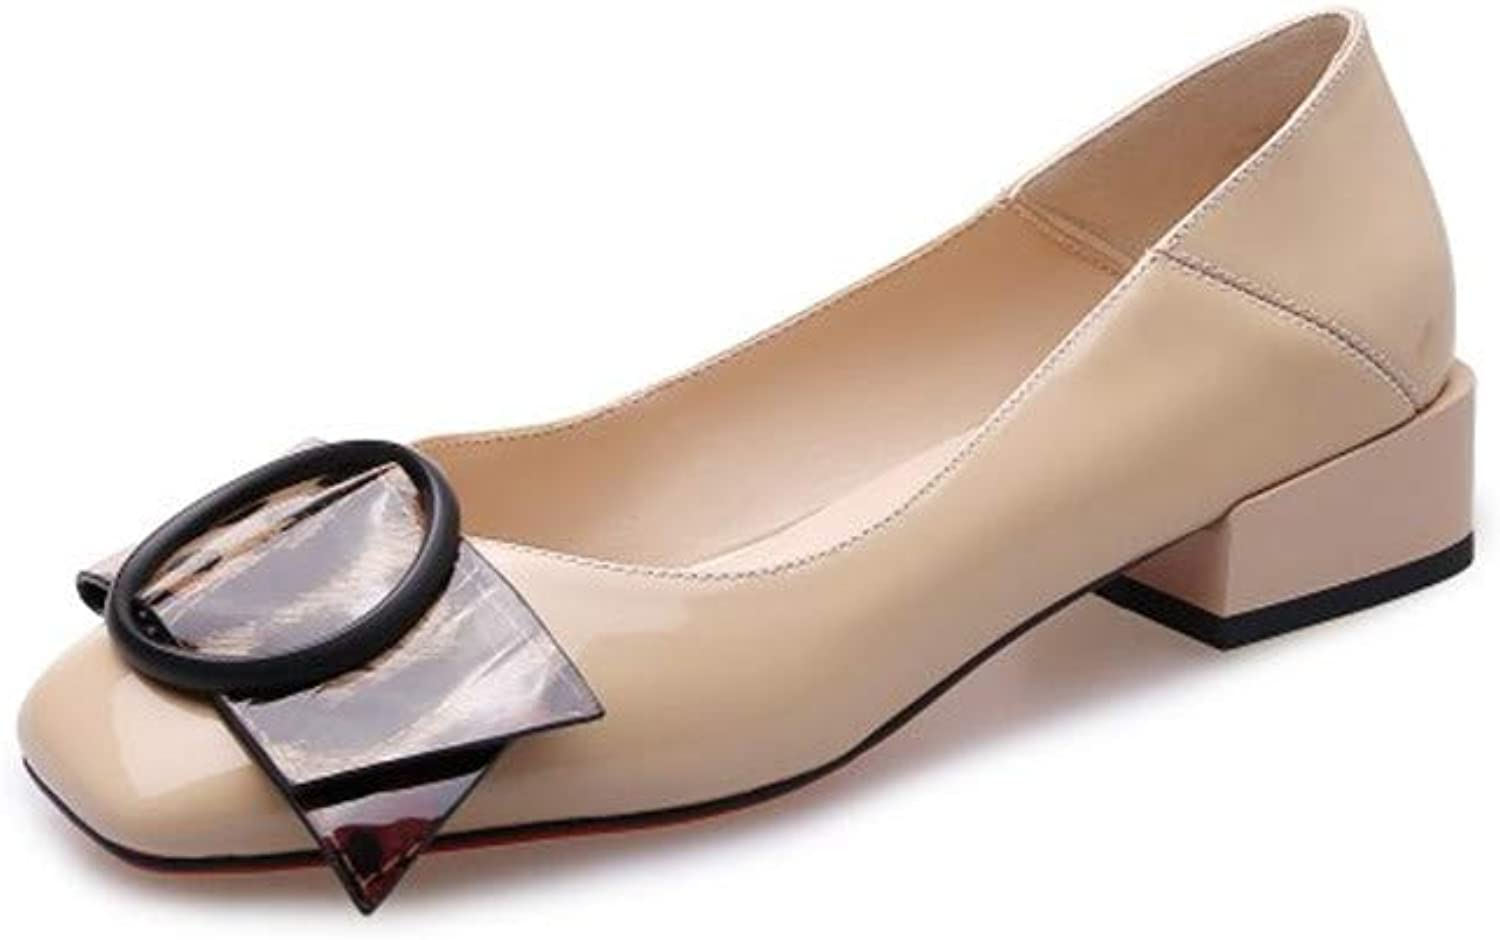 Nine Seven Women's Genuine Leather Square Toe Chunky Heel Handmade Glossy and Comfortable Summer Spring Pumps shoes